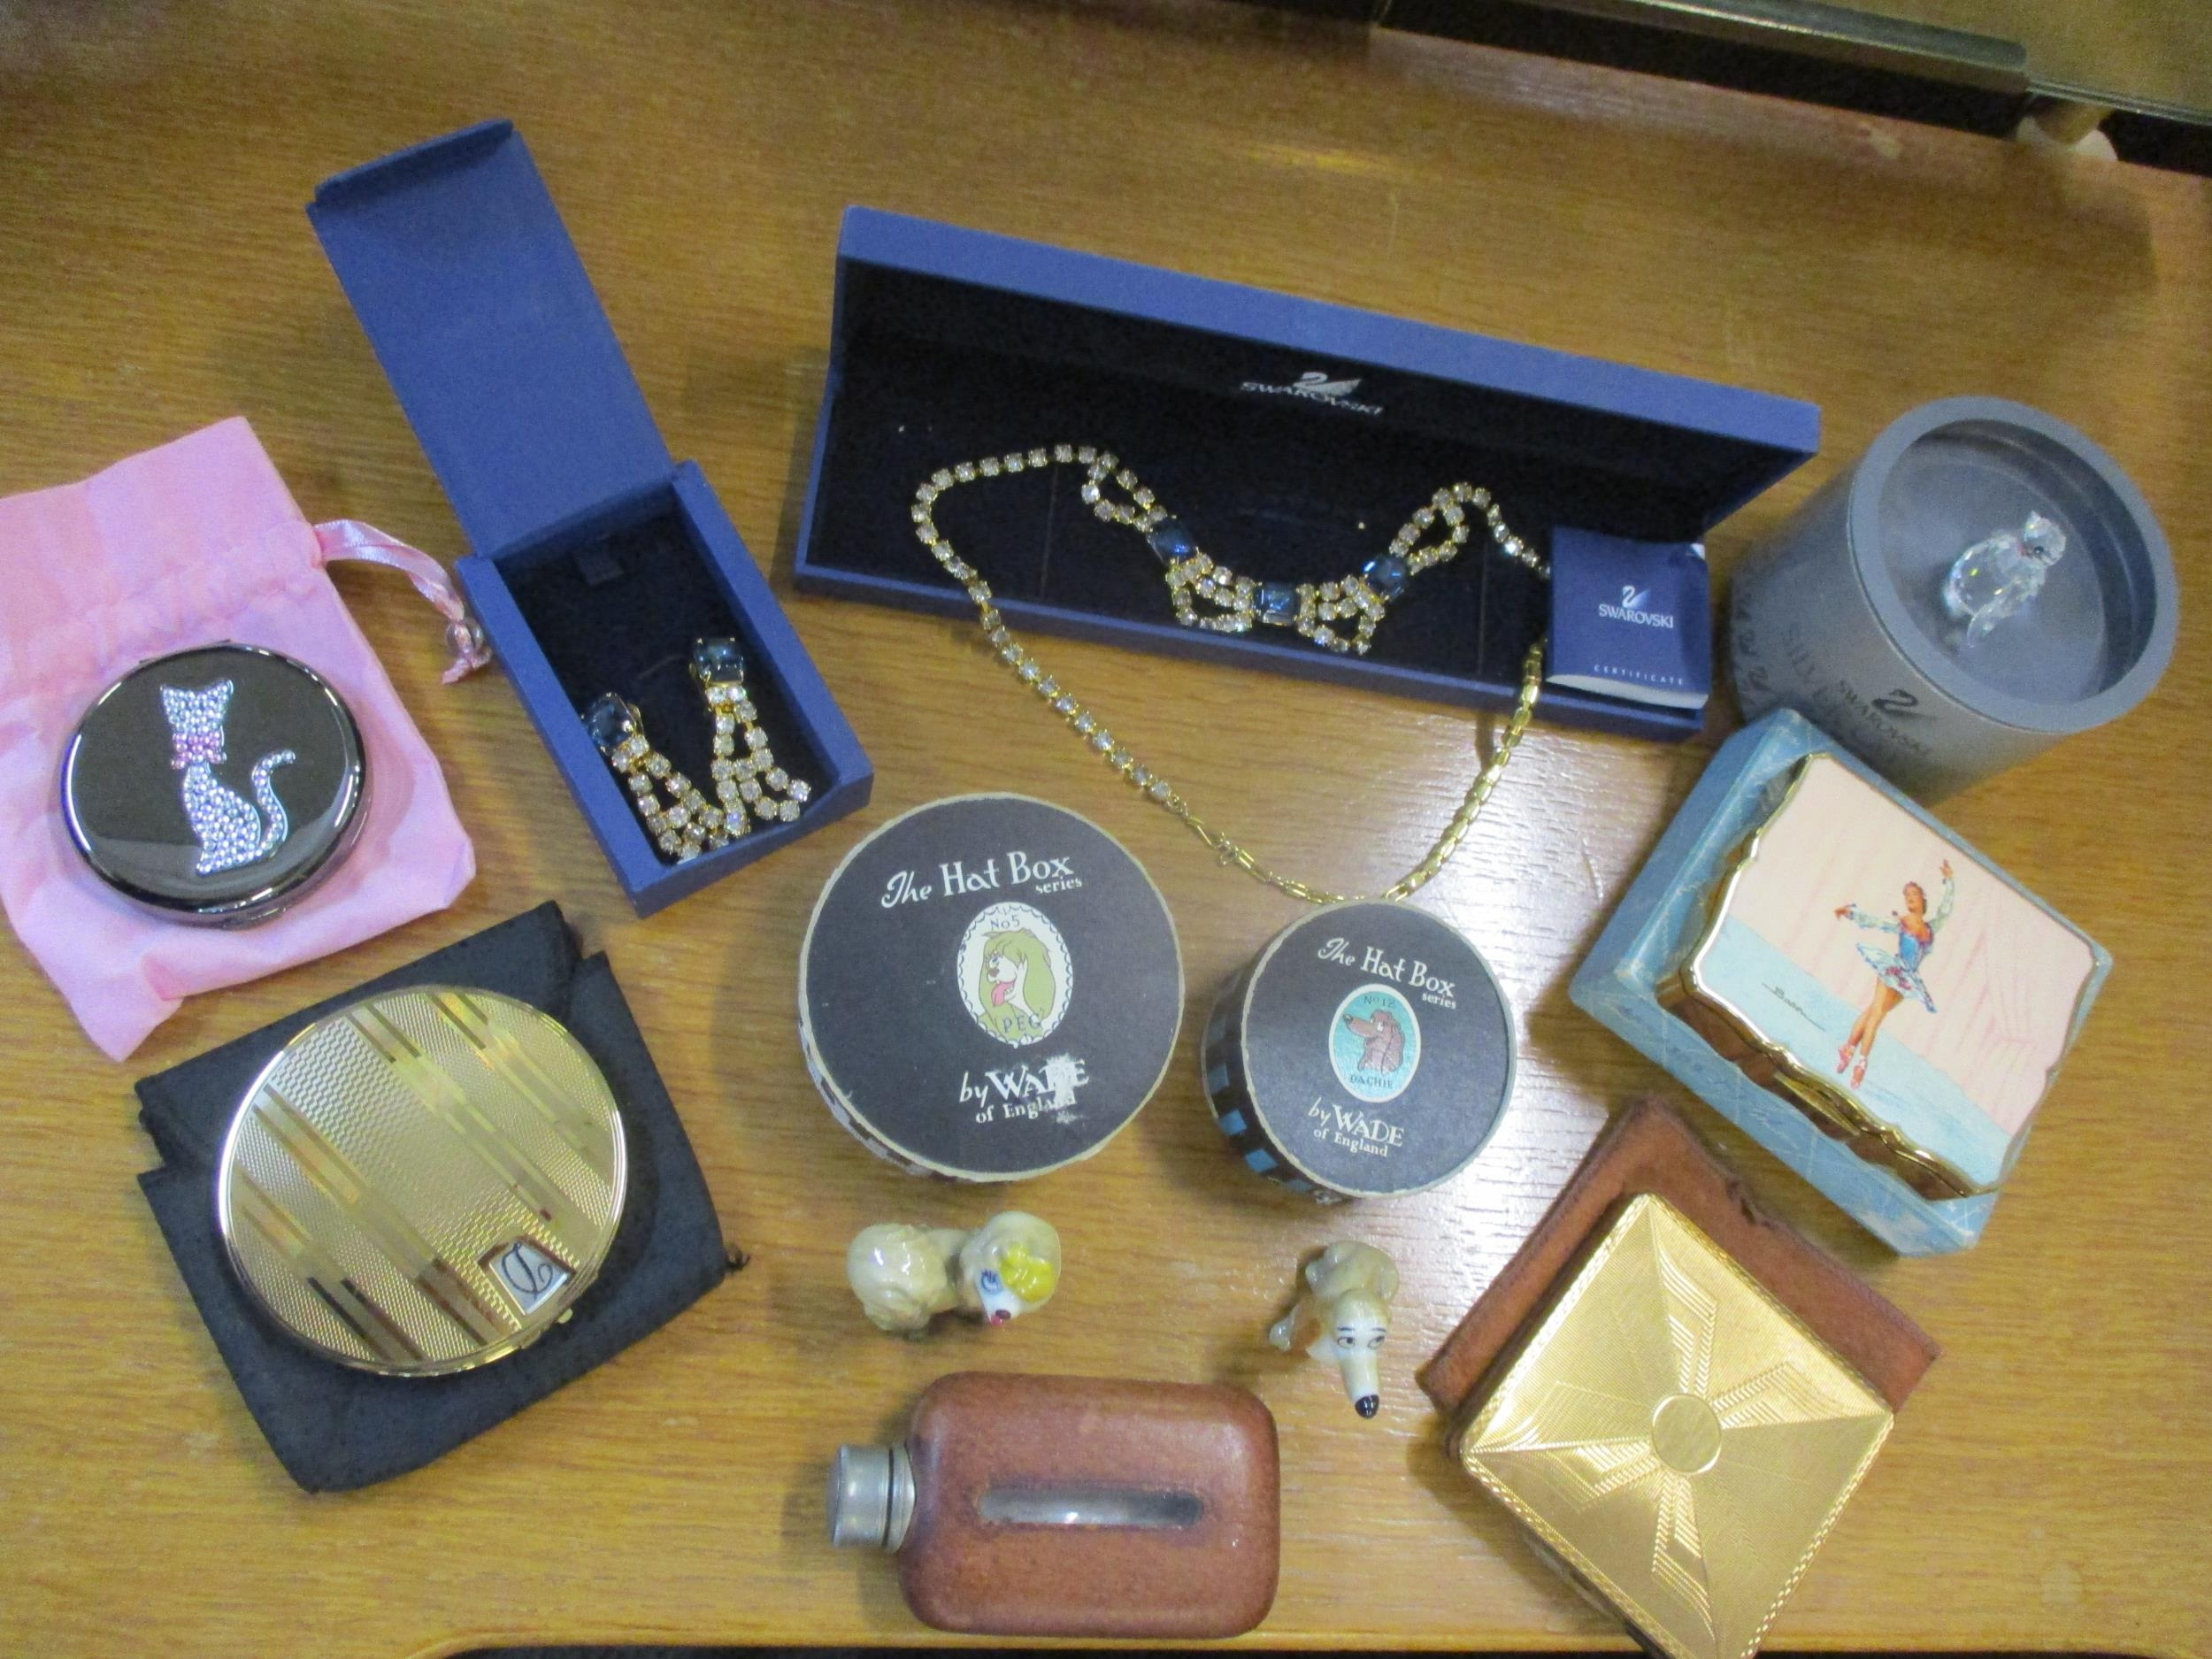 A small quantity of collectibles to include a Stratton compact with a painted image of a ballerina